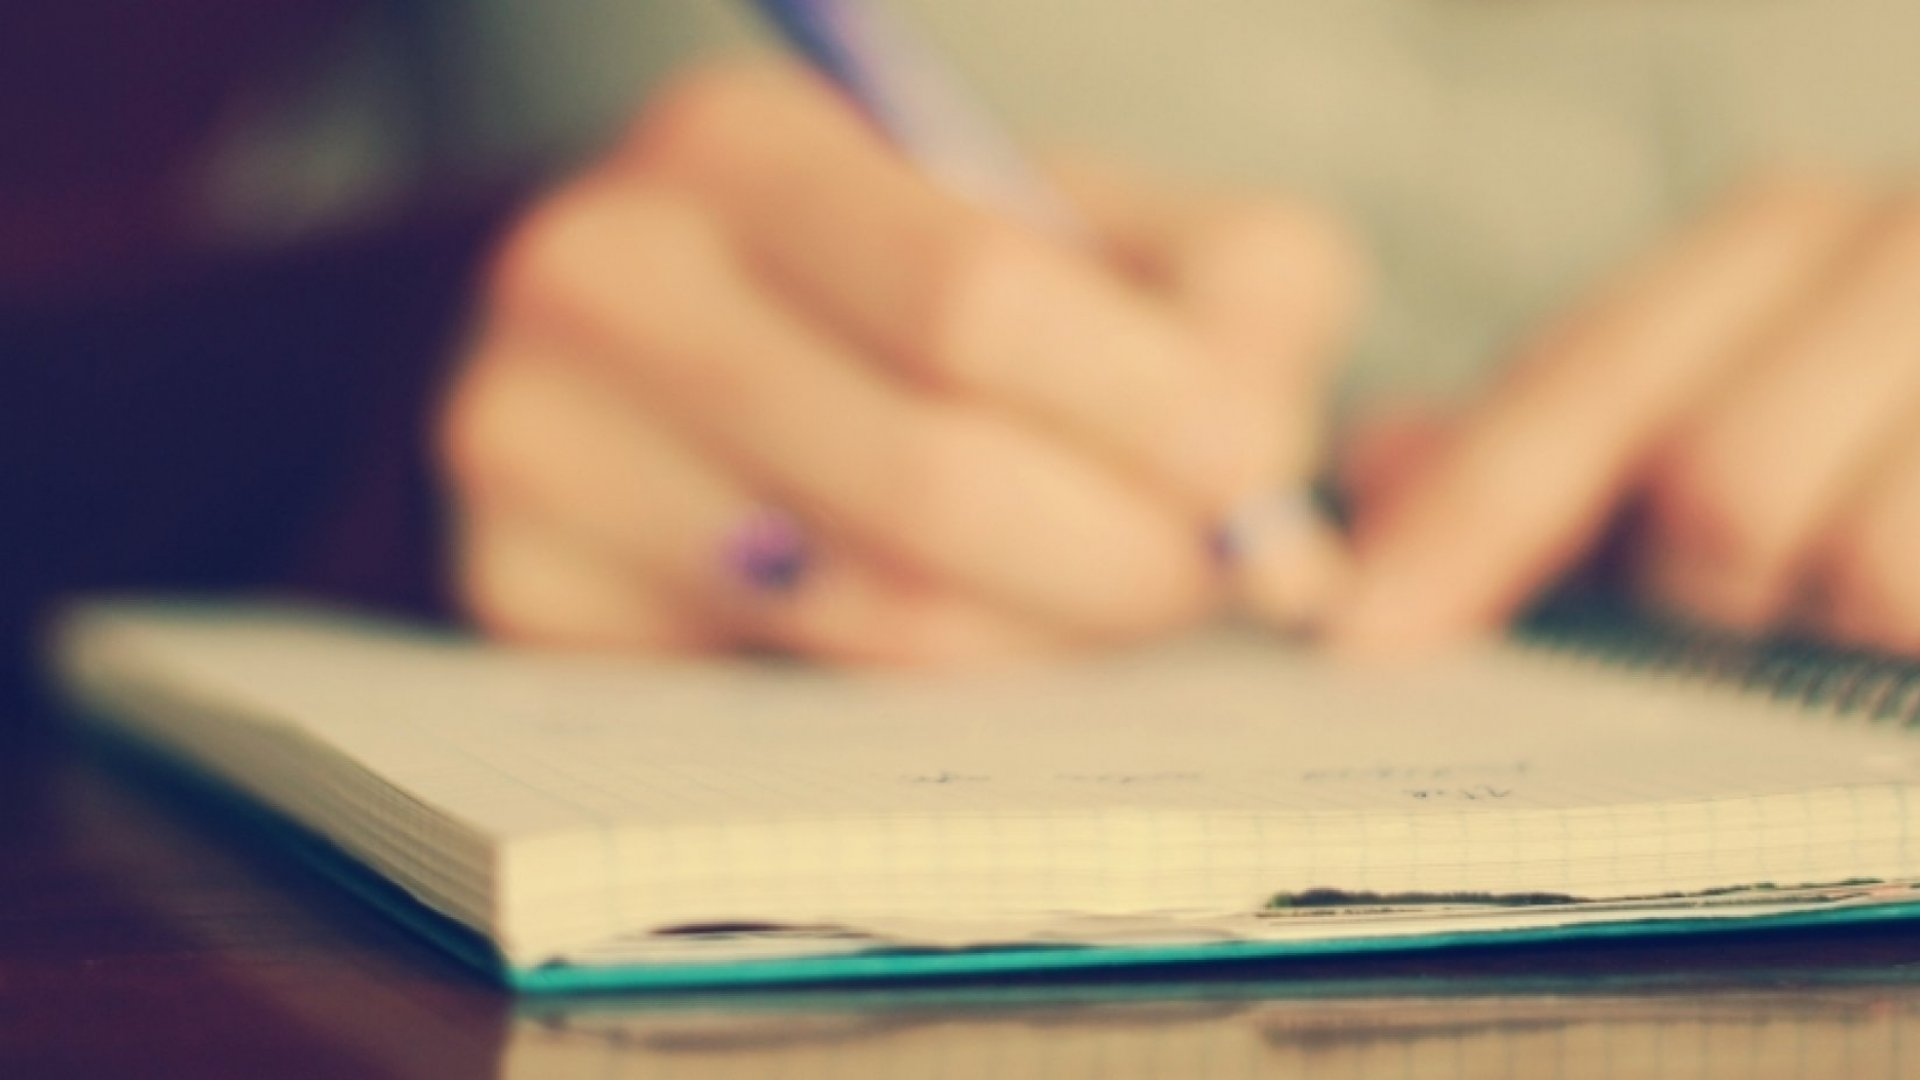 5 Ways Picking Up a Pen Can Make You Smarter